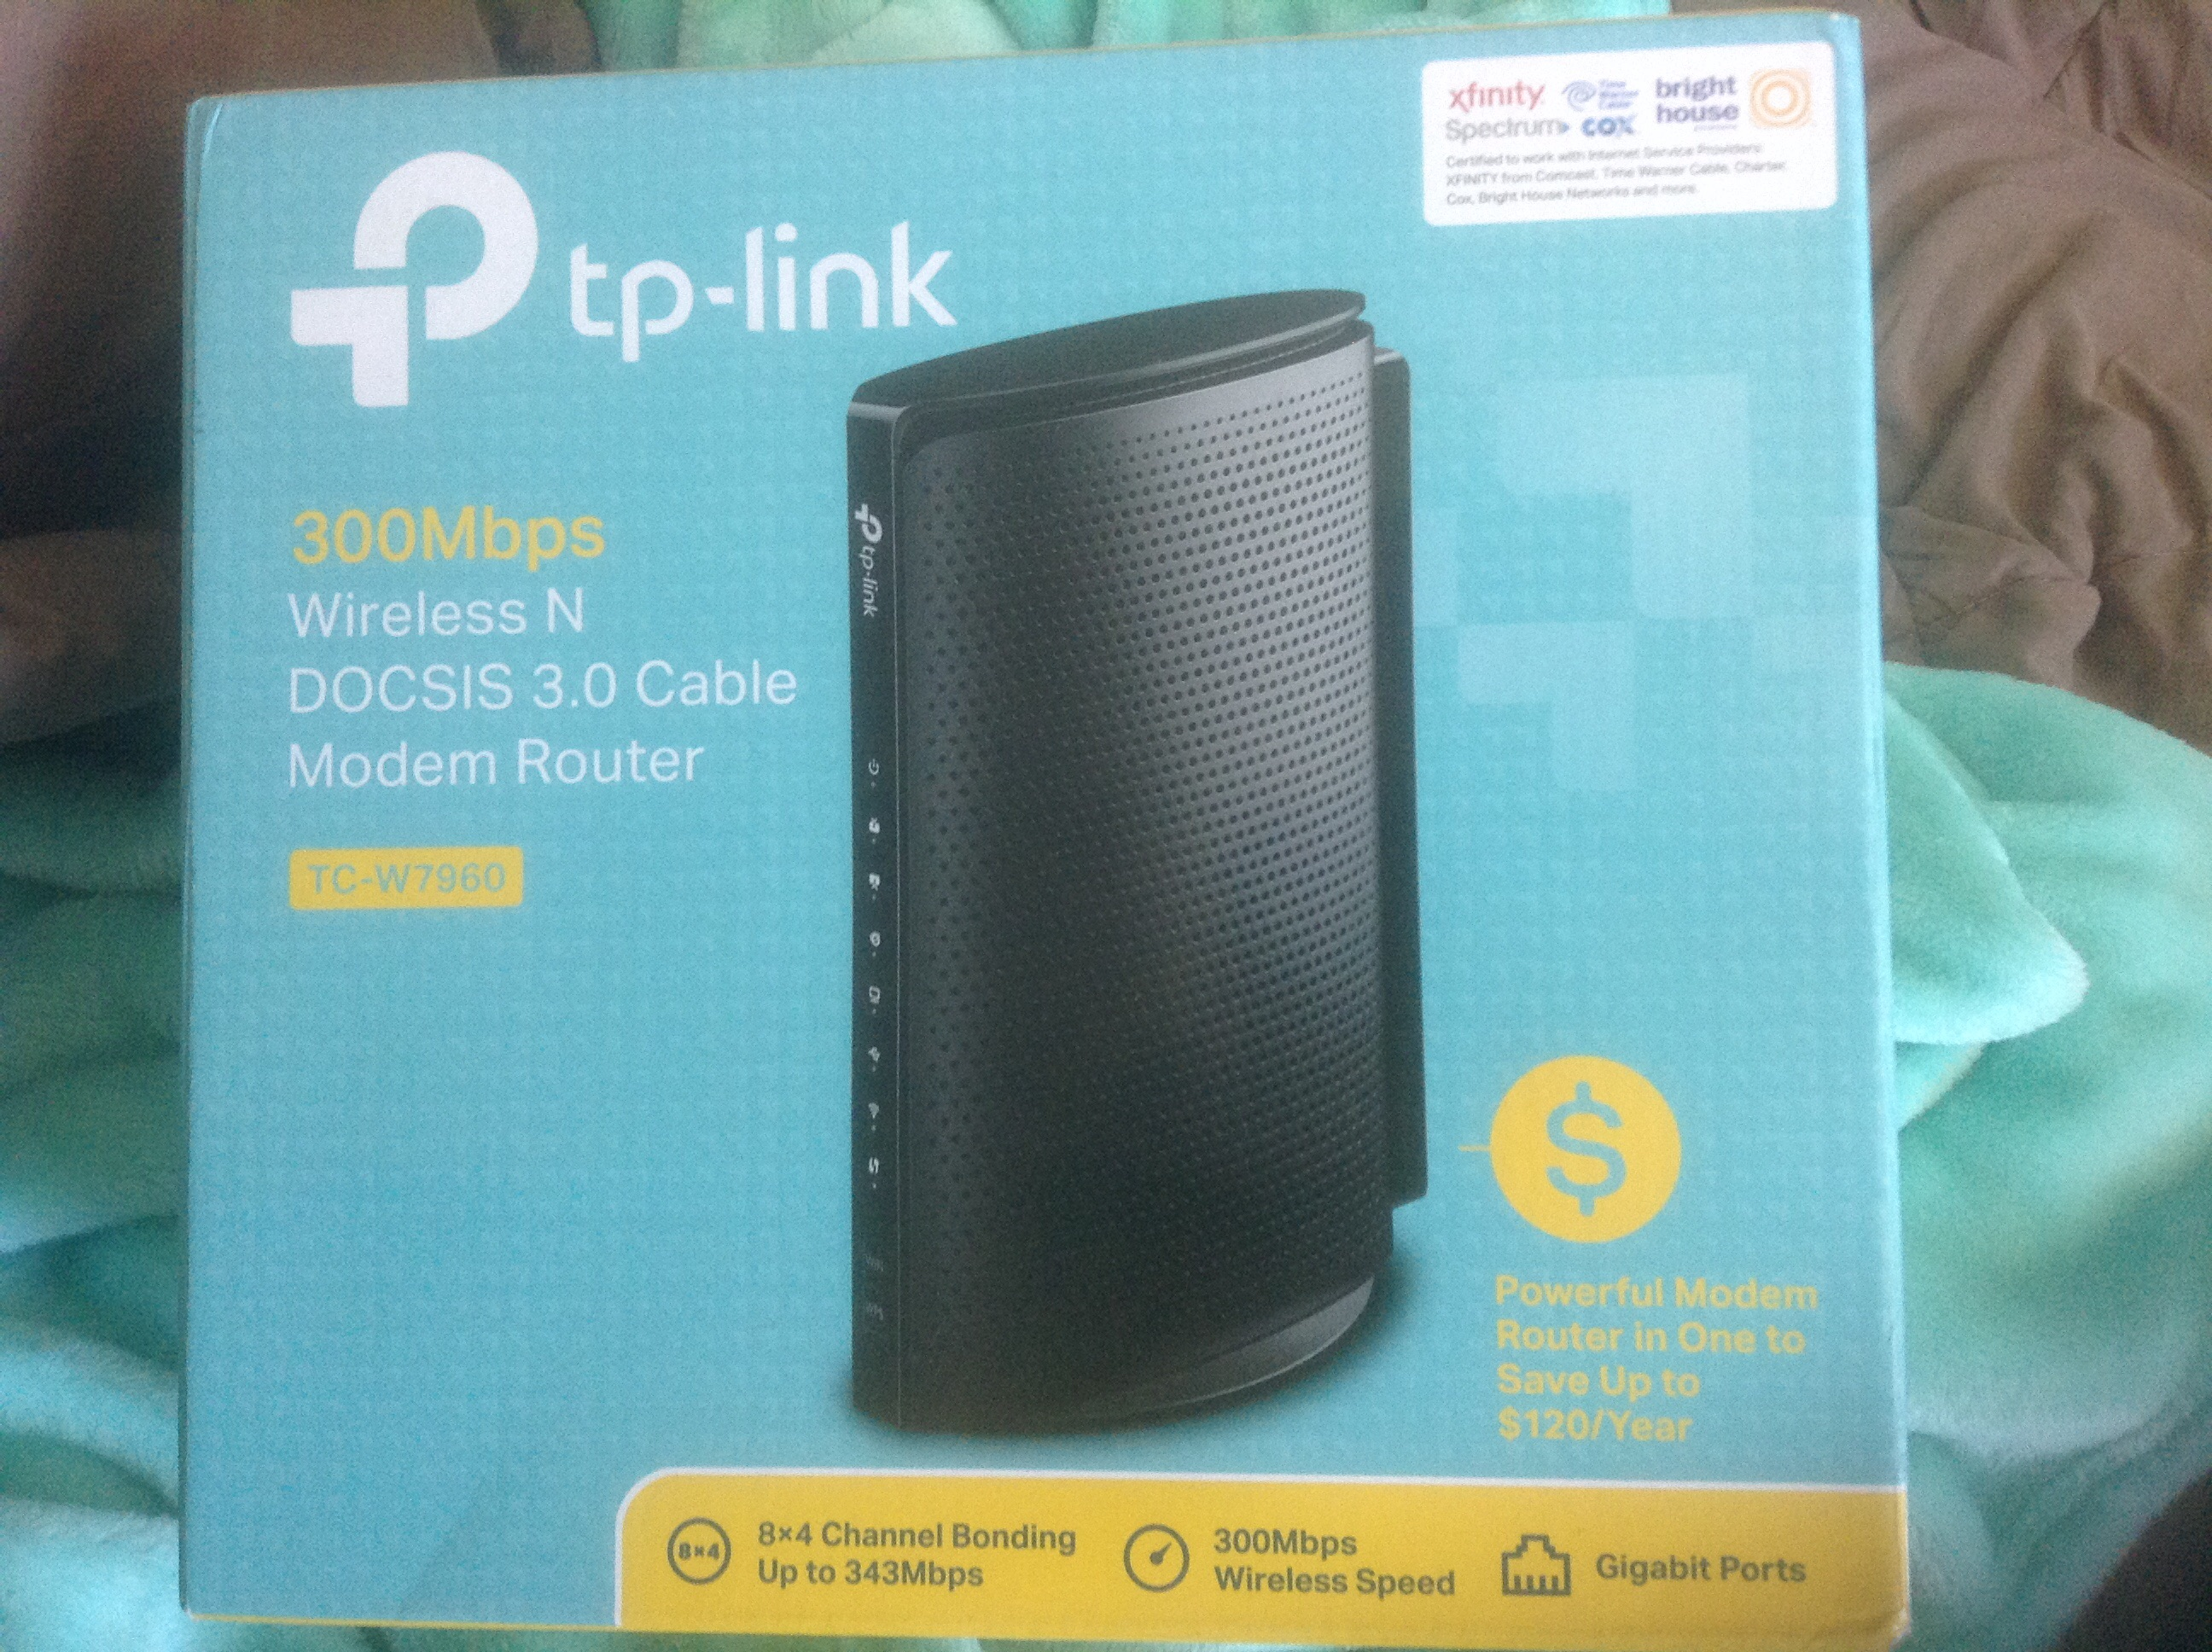 Tp-link 300Mbps  Docsis3.0 Cable Modem Router Unit for use with TWC/Spectrum